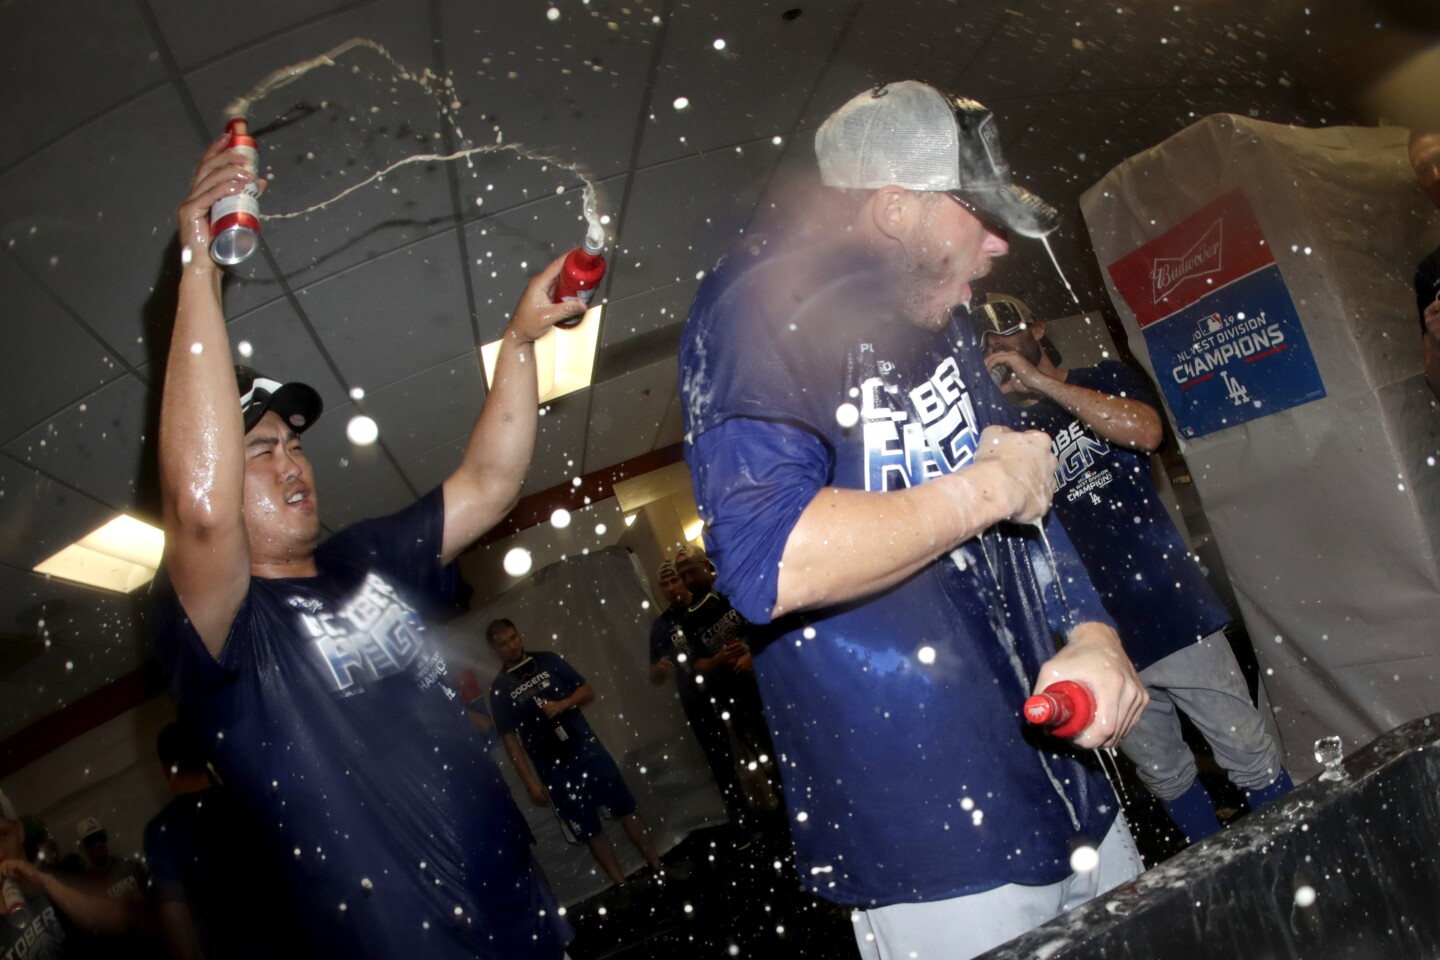 Los Angeles Dodgers pitcher Hyun-Jin Ryu, left, douses center fielder Cody Bellinger during celebration after defeating the Baltimore Orioles 7-3 during a baseball game, Tuesday, Sept. 10, 2019, in Baltimore. The Dodgers clinched the National League West Division title with the win. (AP Photo/Julio Cortez)